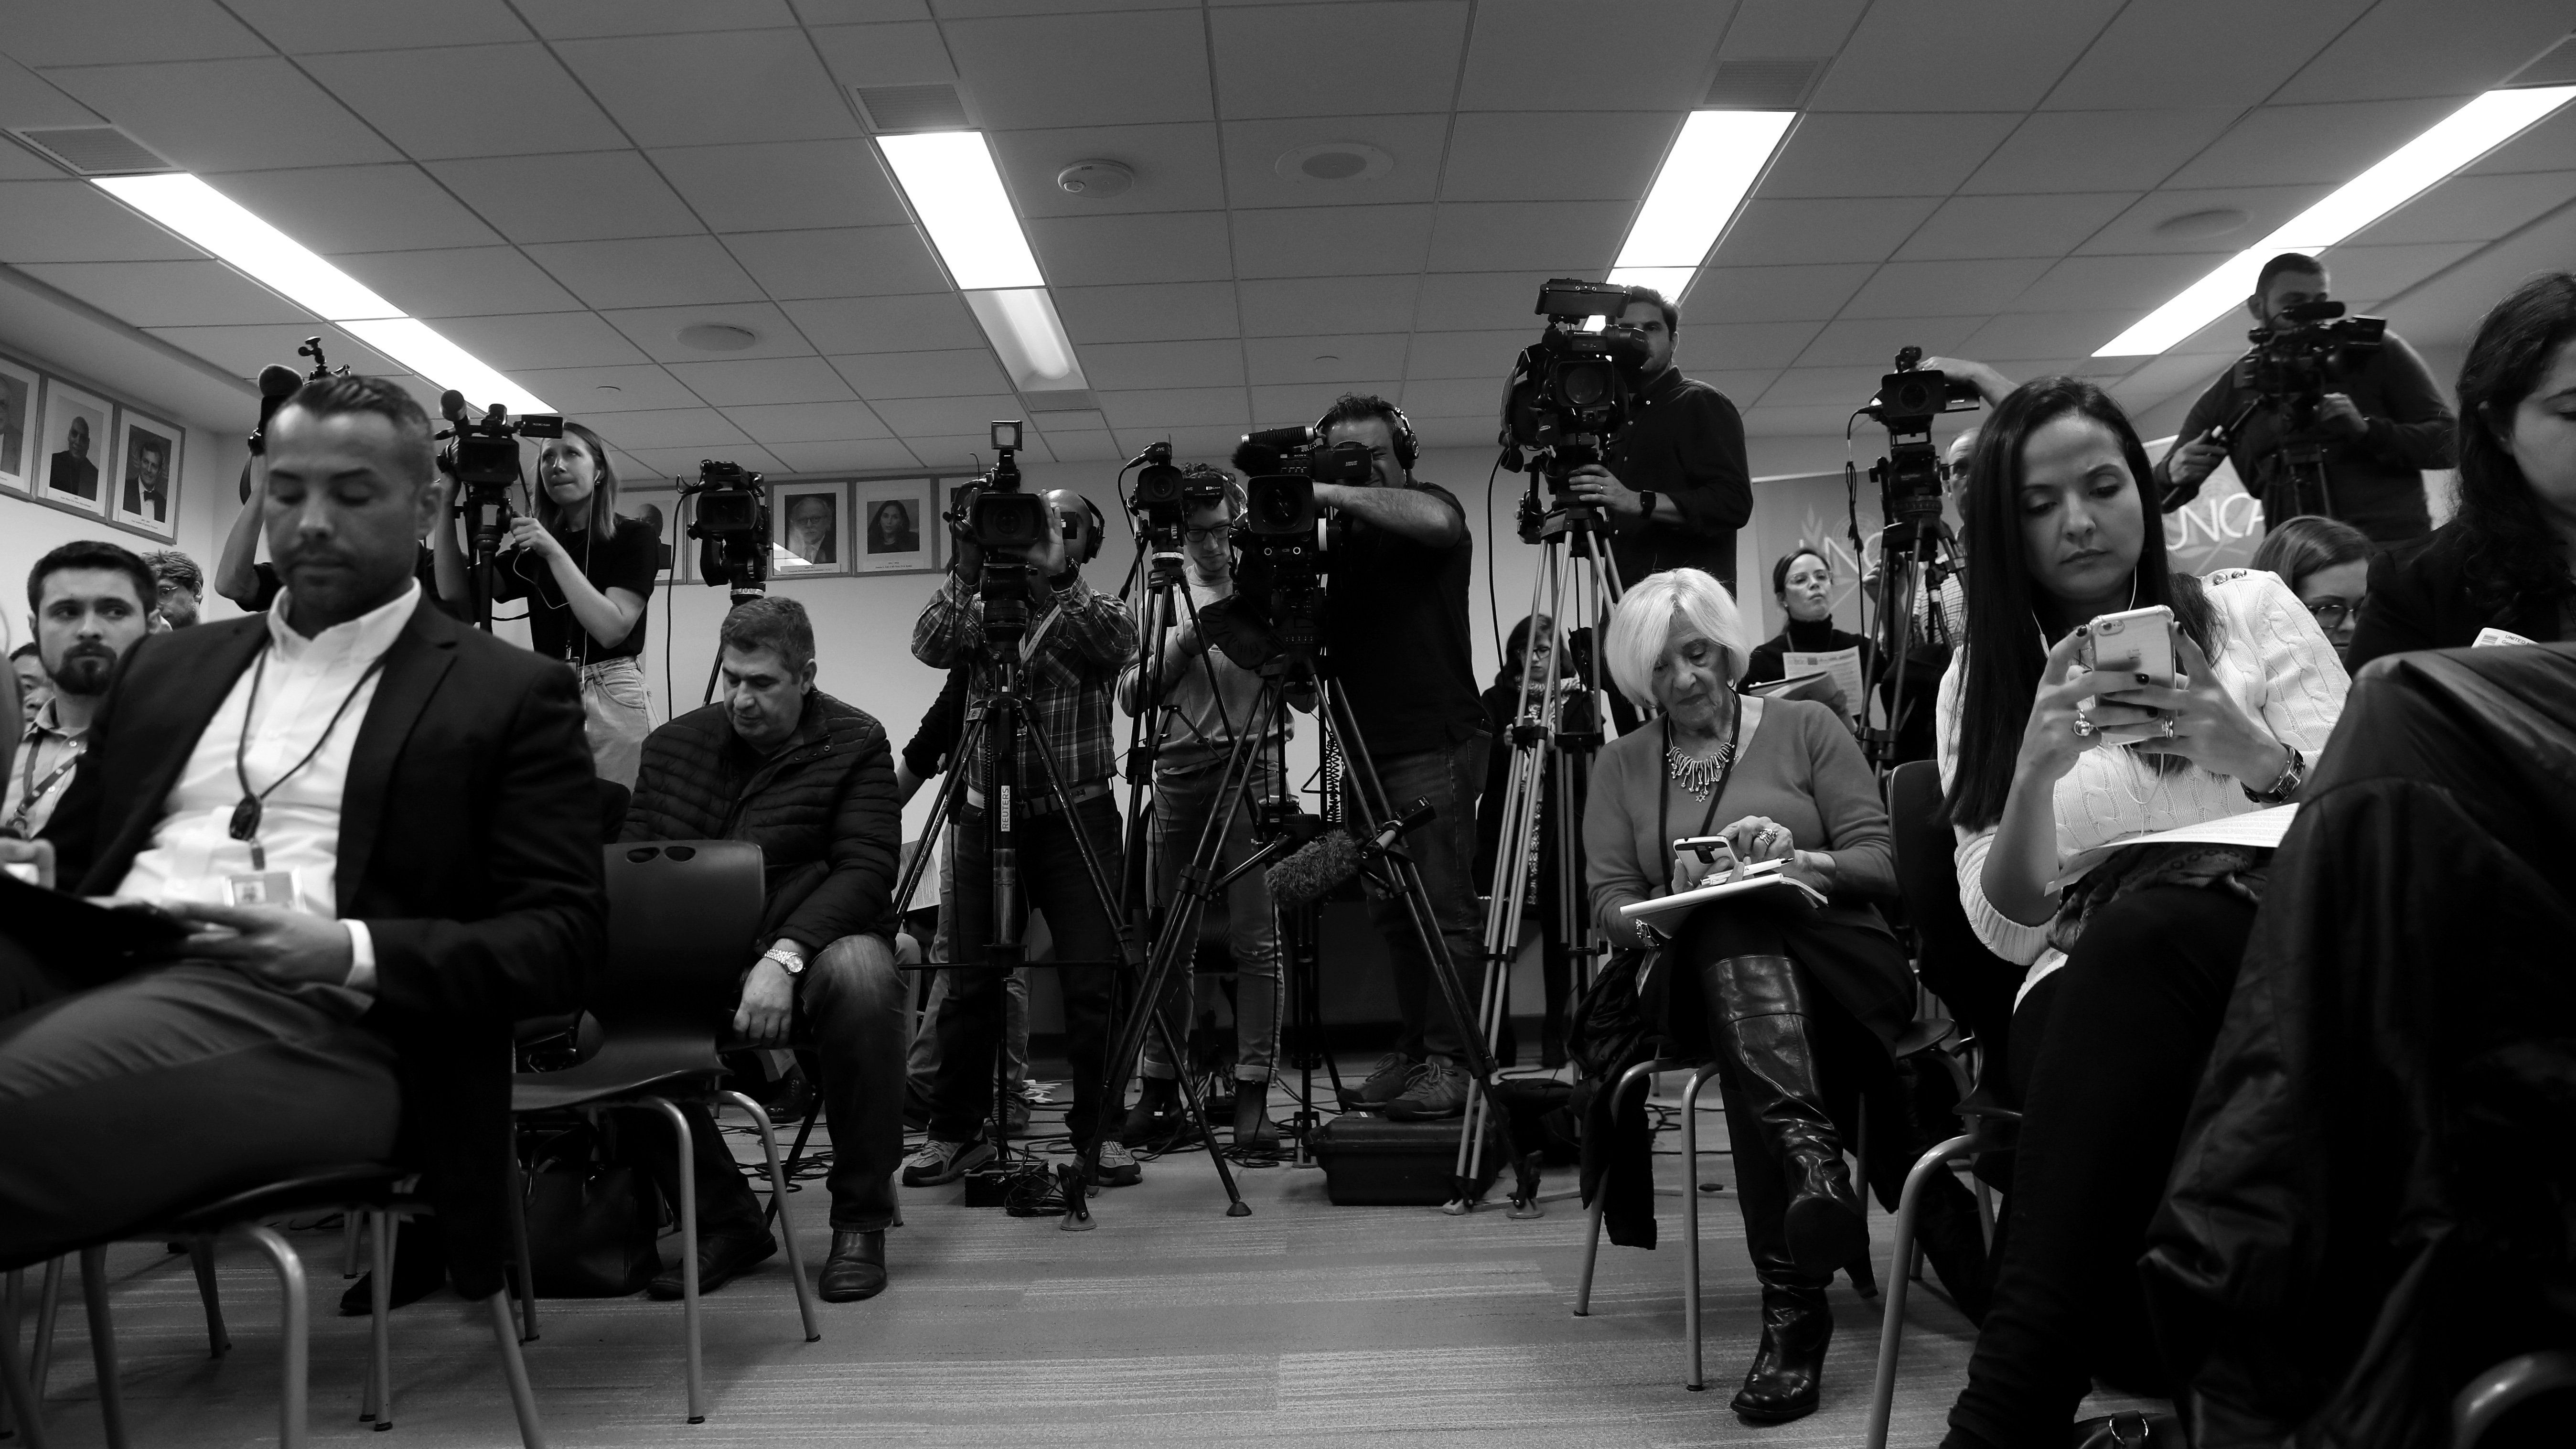 Members of the media attend a news conference on the disappearance of Saudi journalist Jamal Khashoggi at the United Nations in New York, U.S., October 18, 2018.